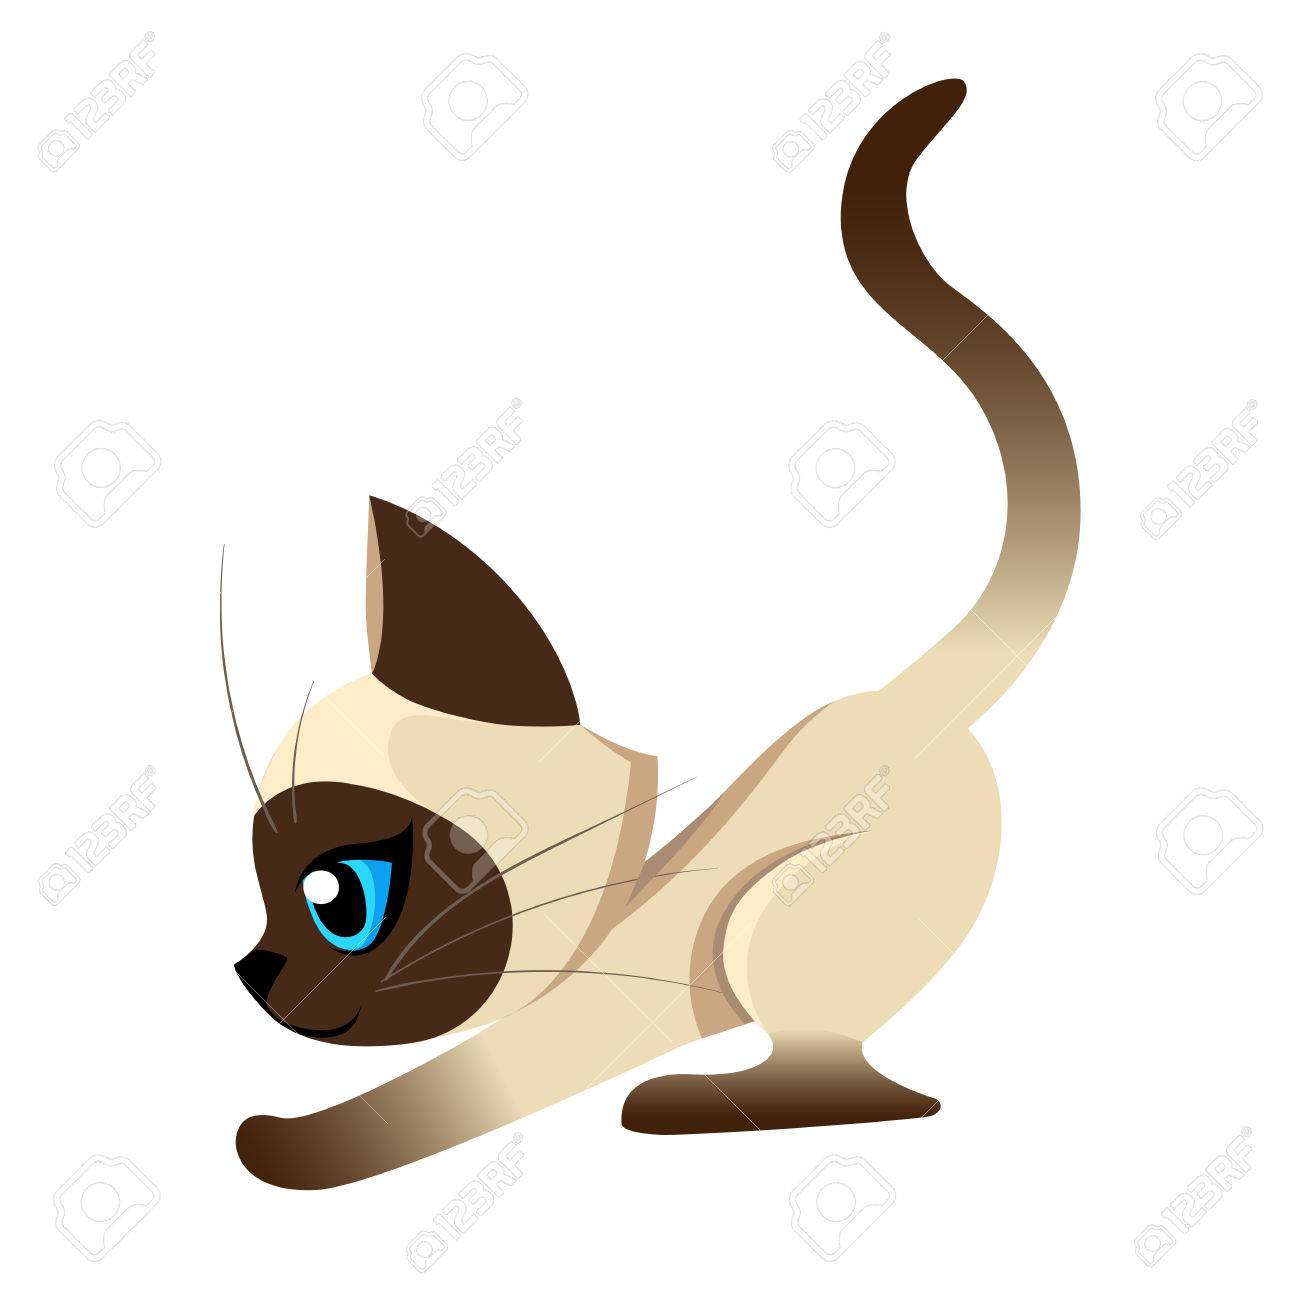 Siamese Cat Clipart at GetDrawings.com.